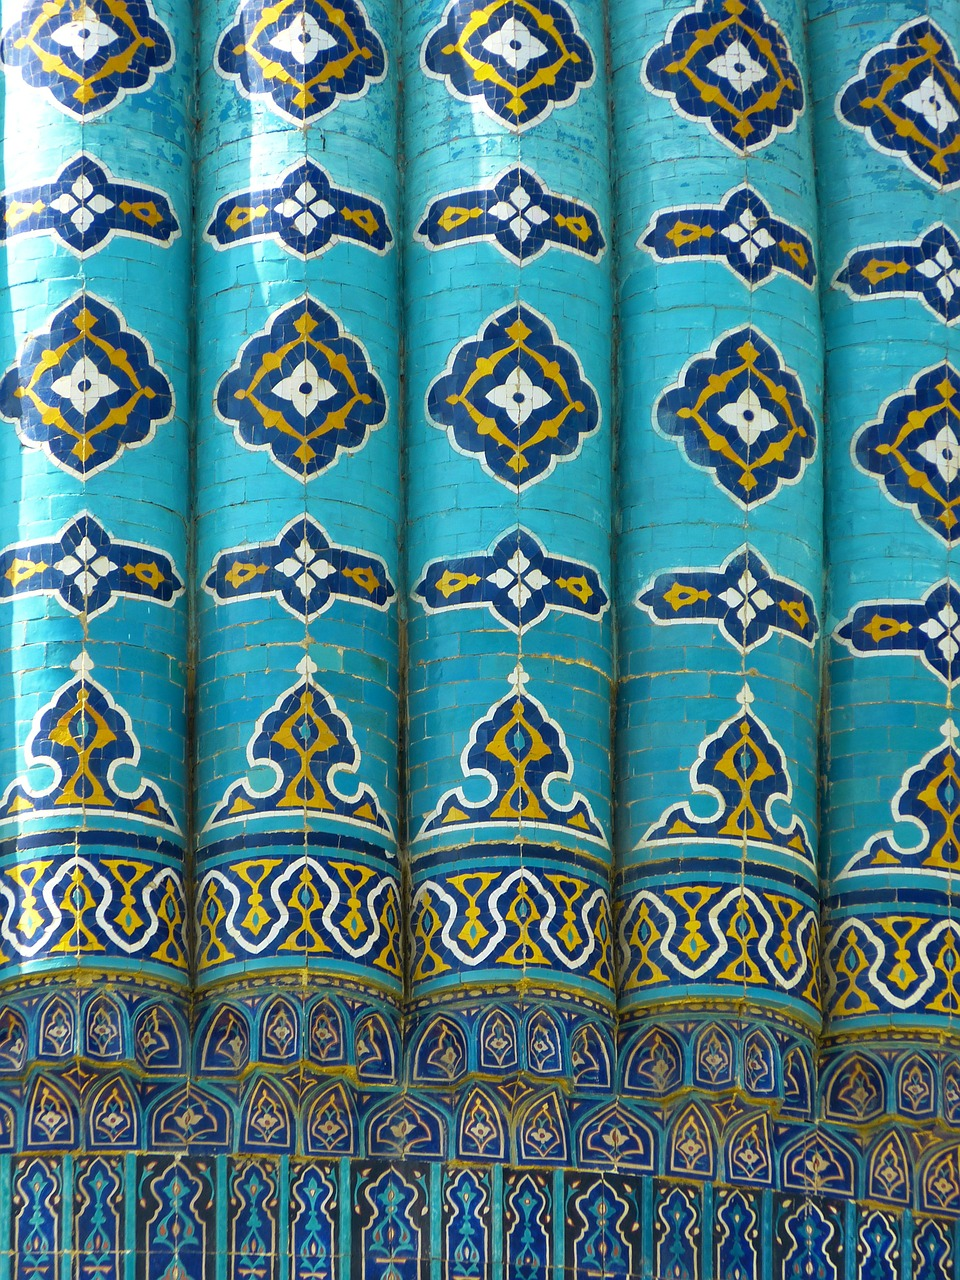 uzbekistan mosaic pattern free photo